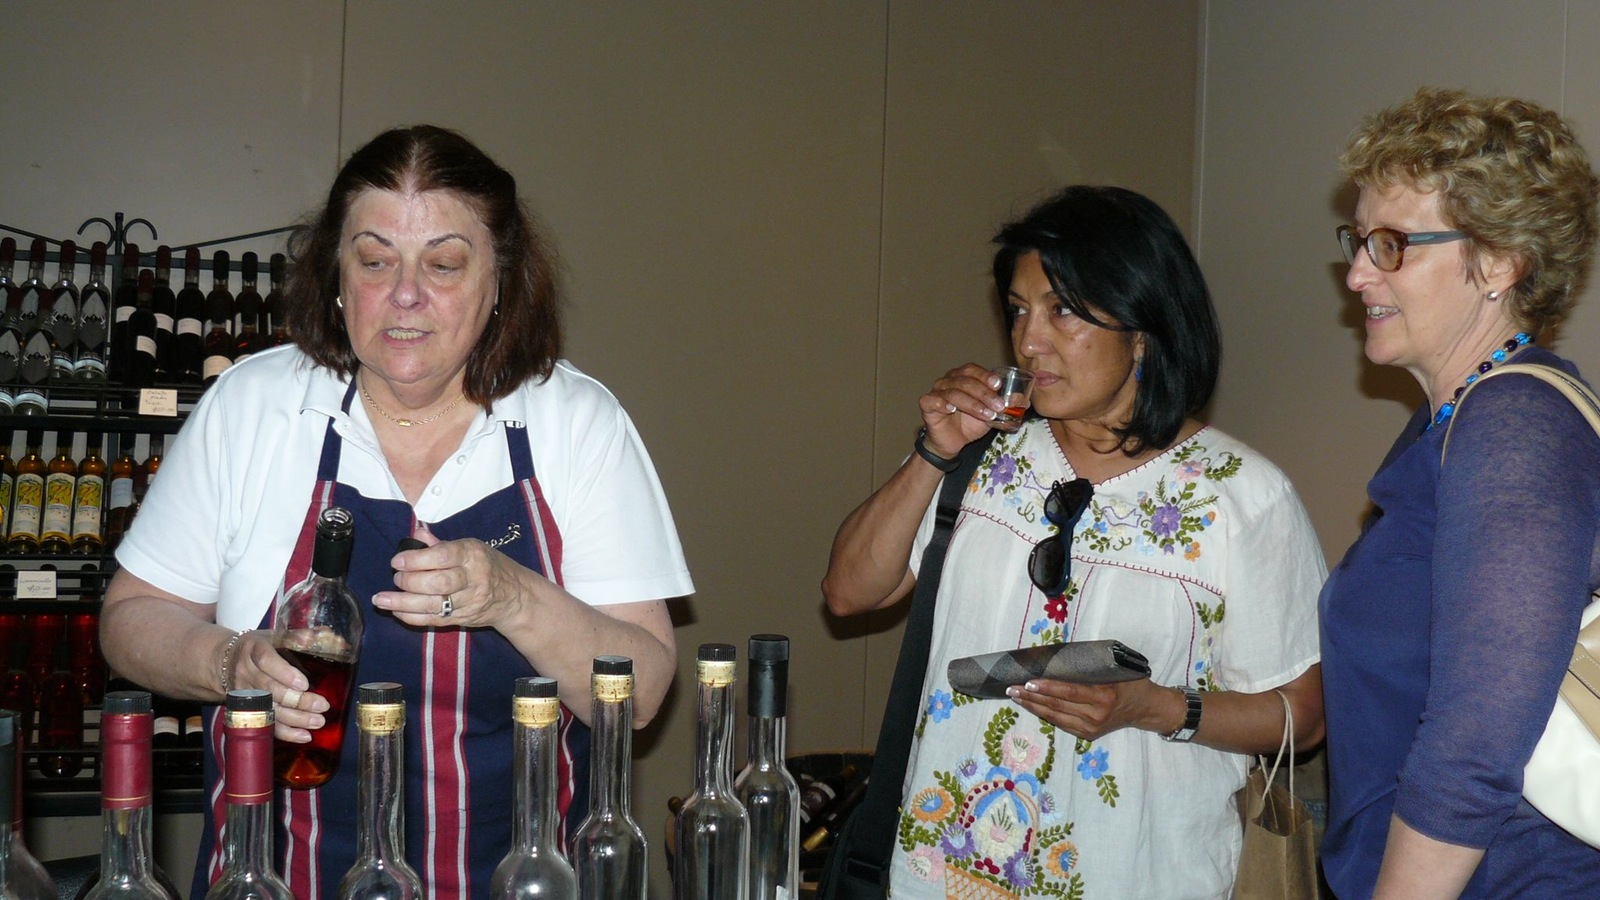 Grappa tasting - just for fun